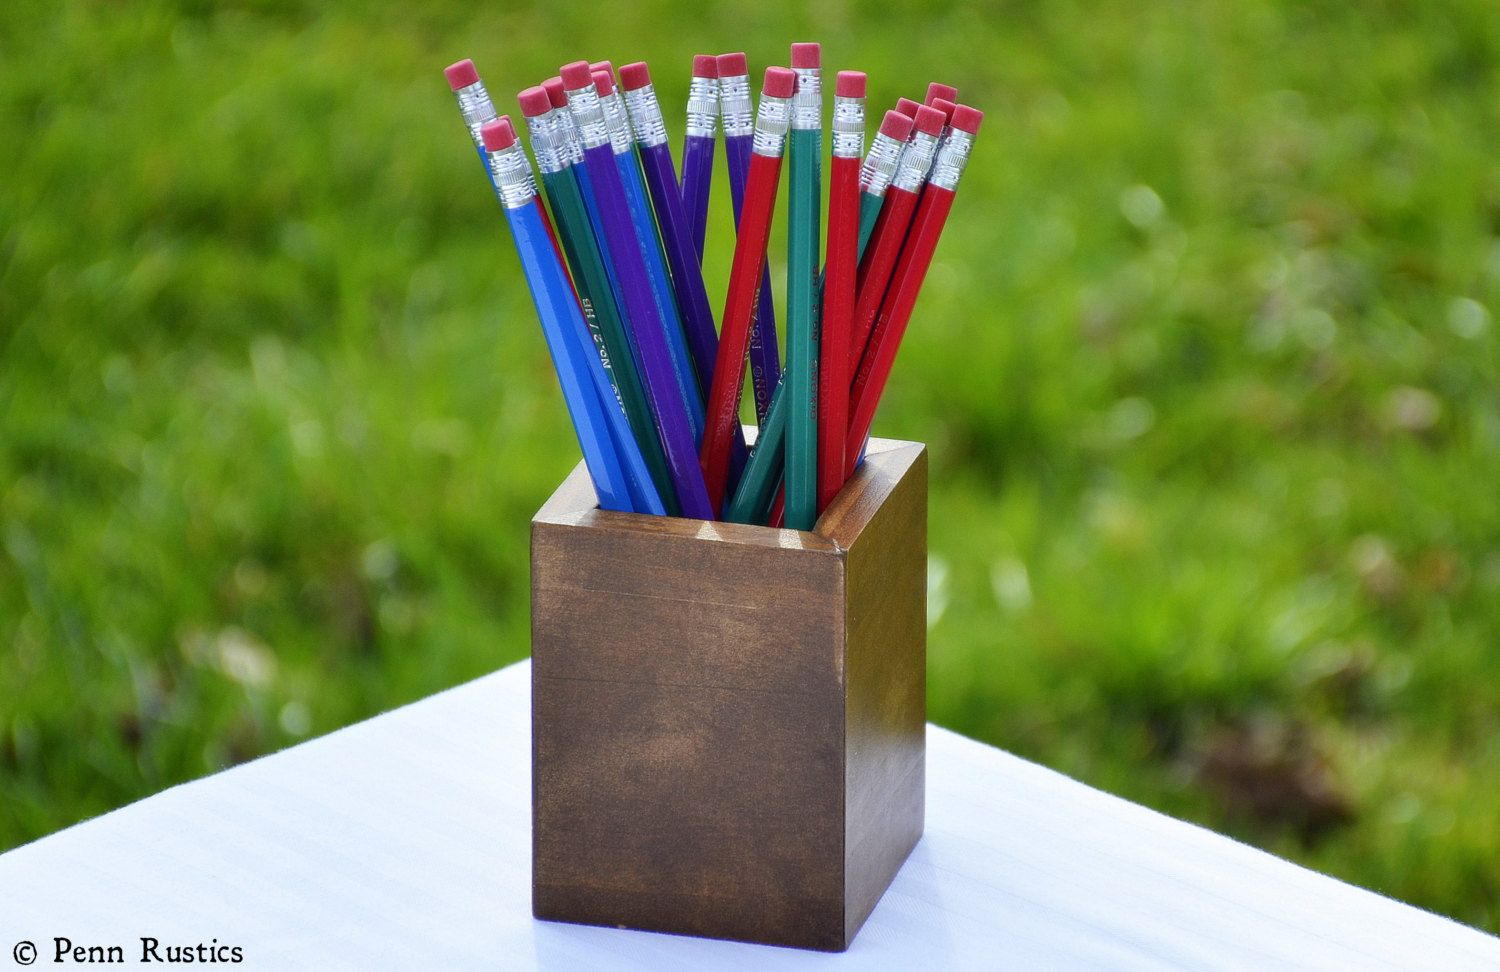 Everyday Rustic Wood Pencil Cup  http://www.pennrustics.com/home-goods/everyday-rustic-wood-pencil-cup